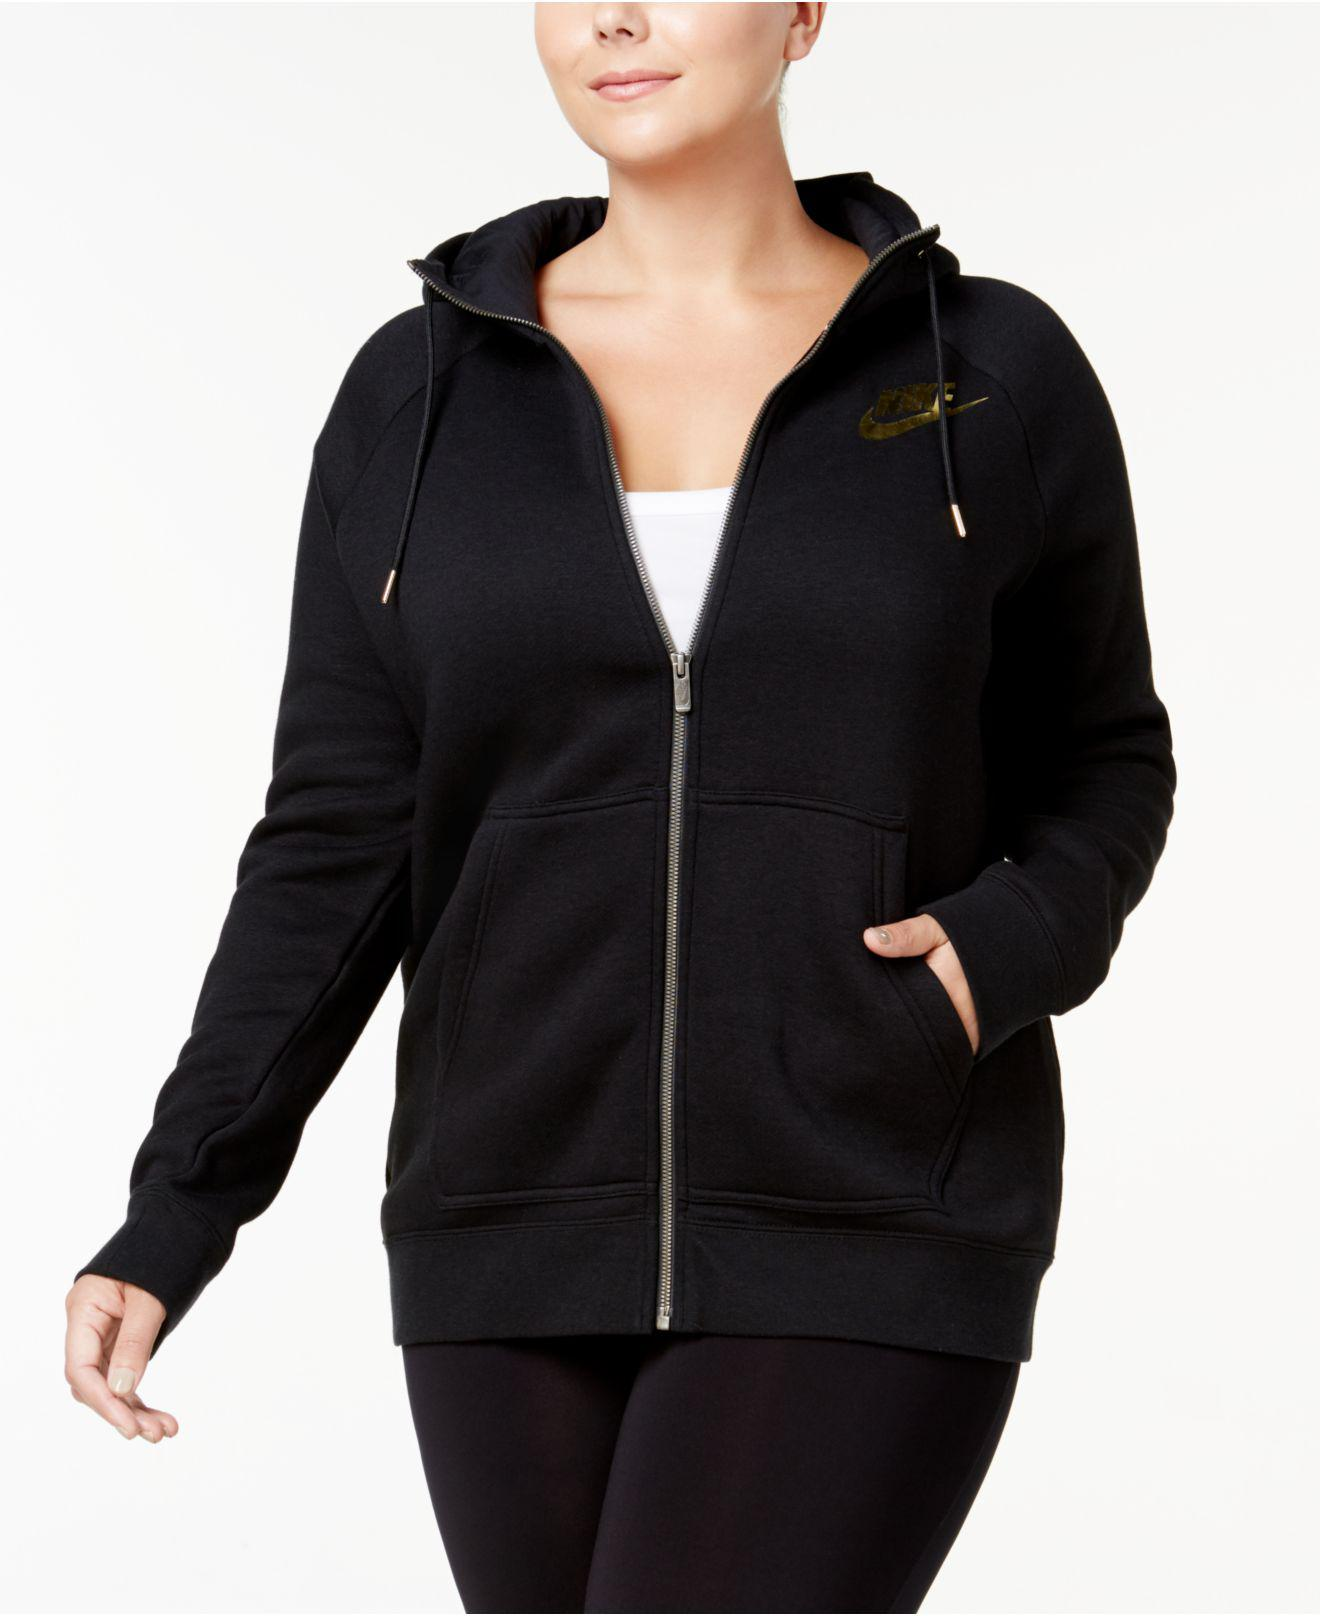 adidas uk dillard nike plus size activewear